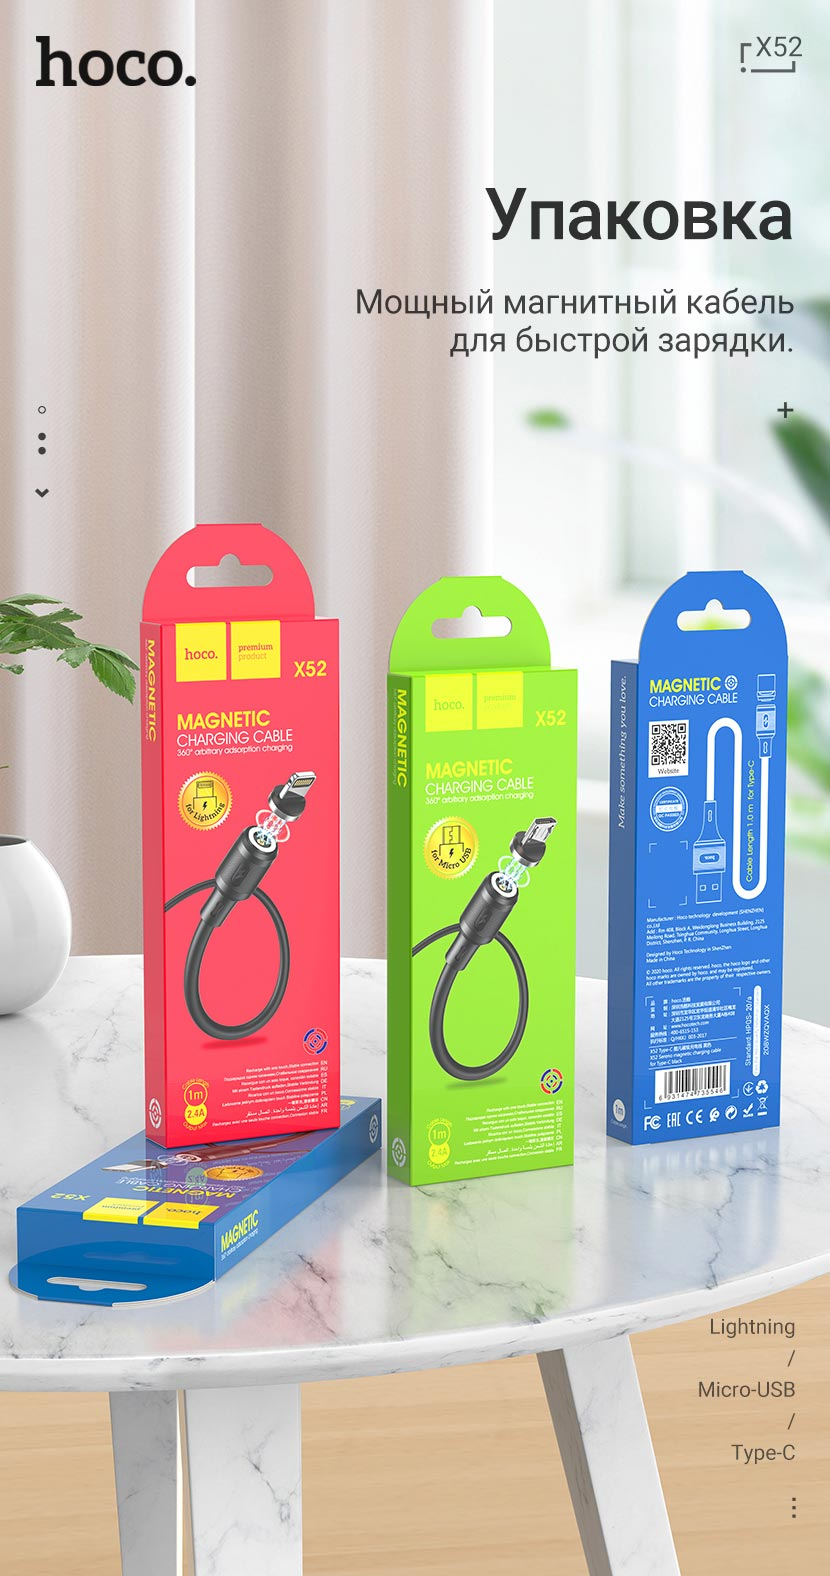 hoco news x52 sereno magnetic charging cable package ru